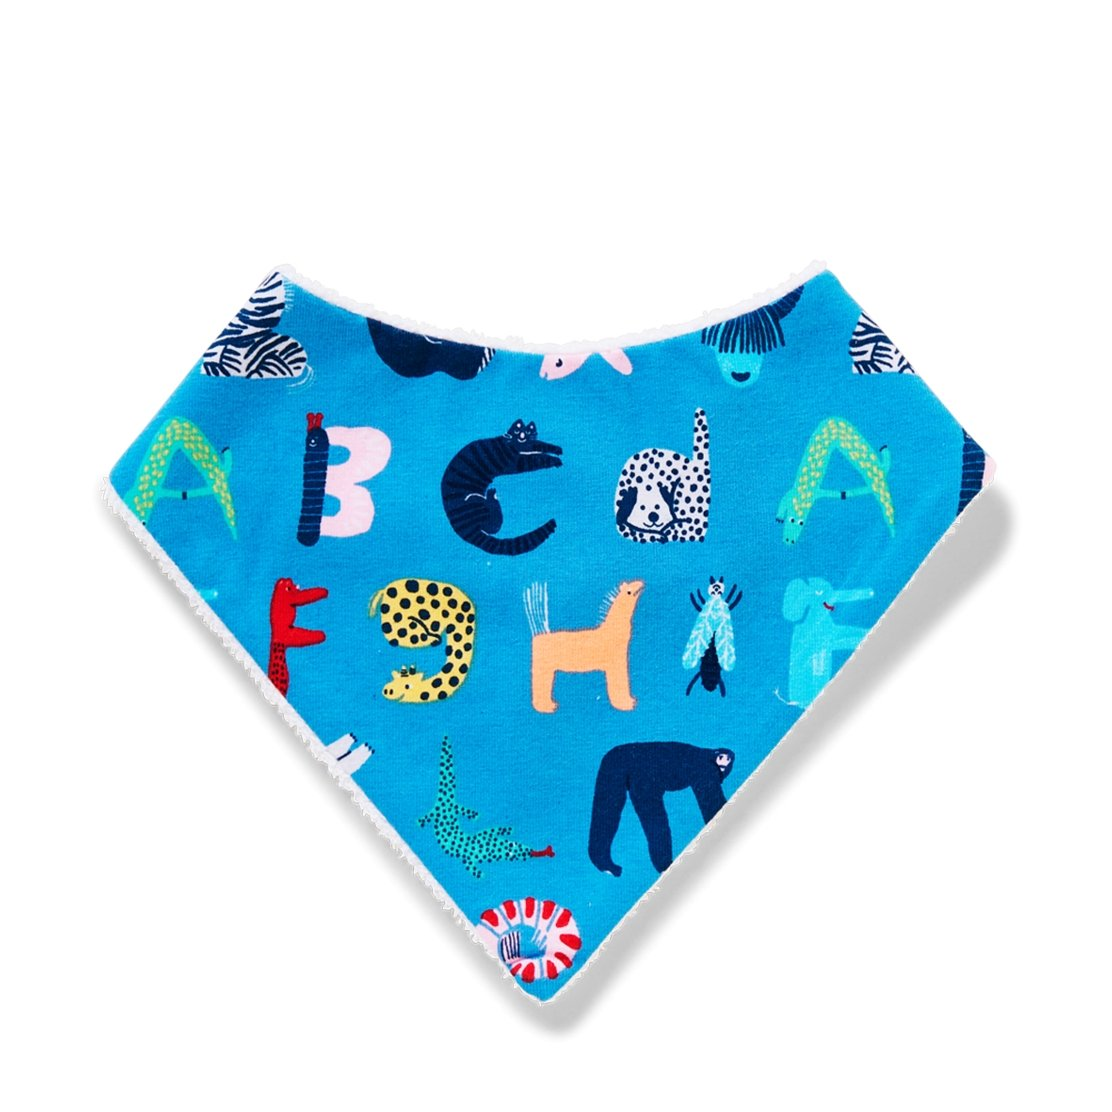 ABC Animals Twilight Yoyo Bib - Halcyon Nights - Hugs For Kids